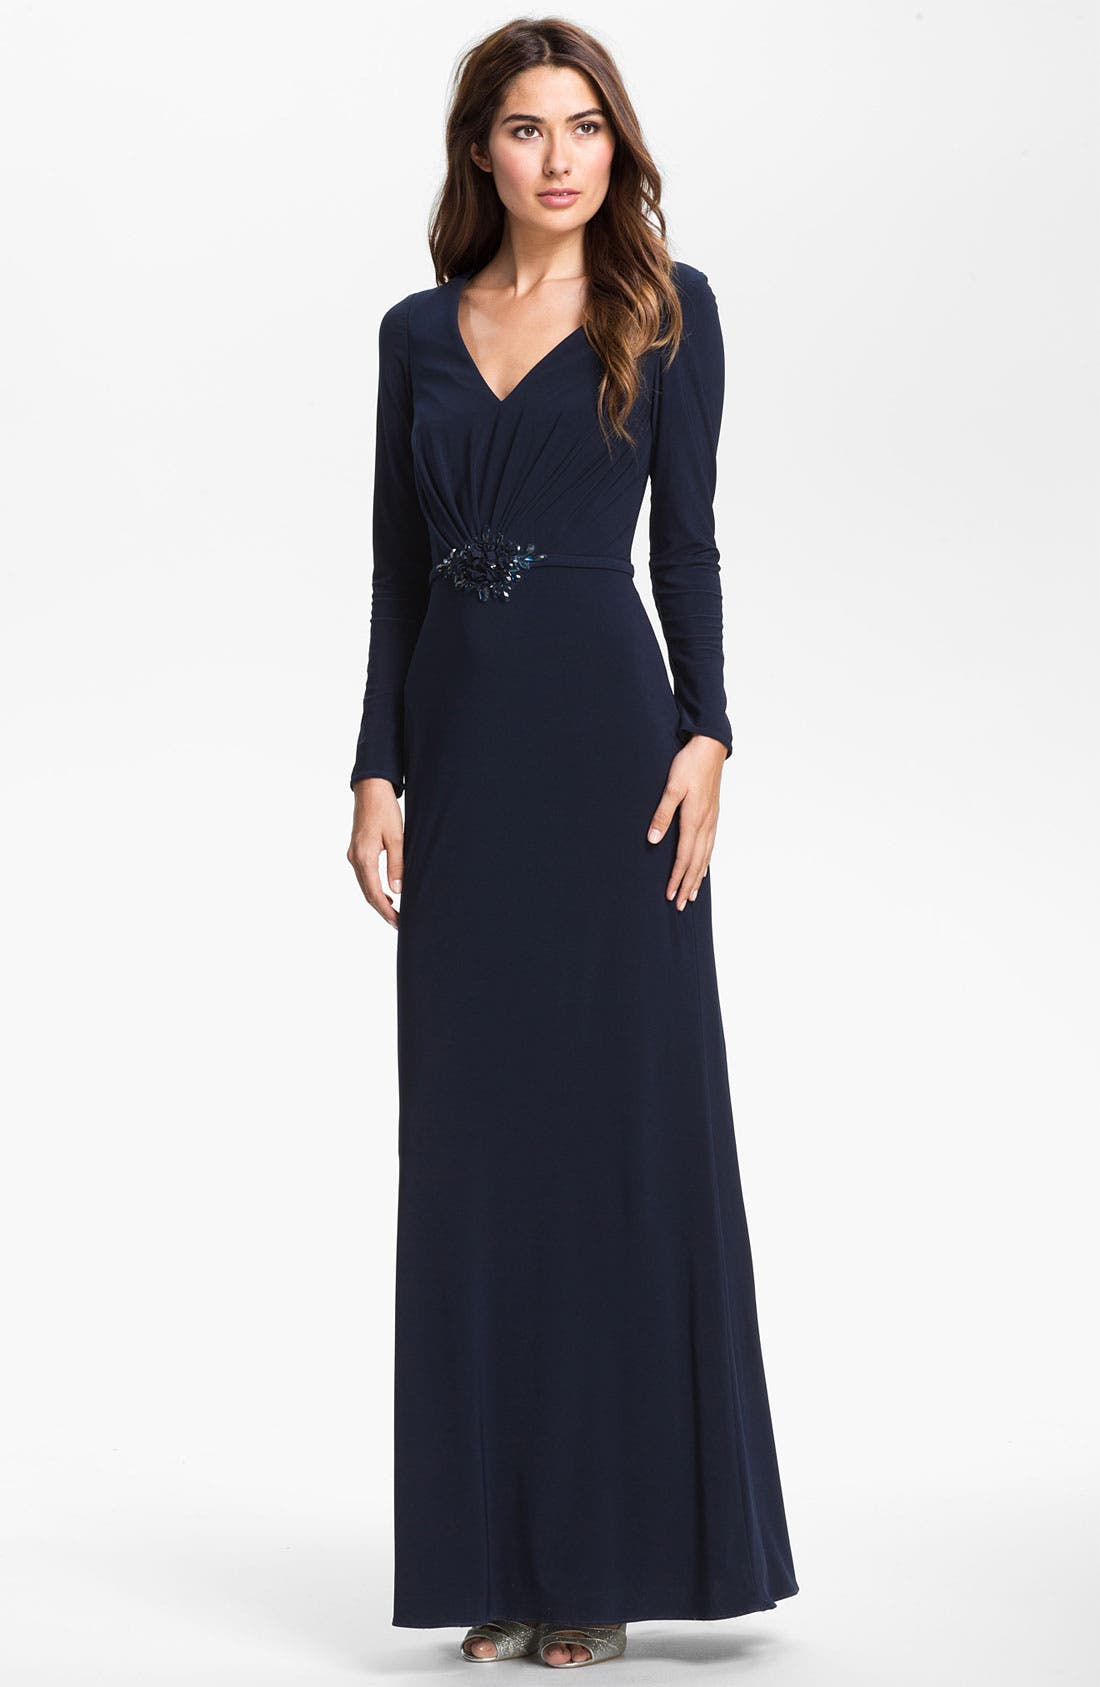 Main Image - Kathy Hilton Embellished Long Sleeve Jersey Gown